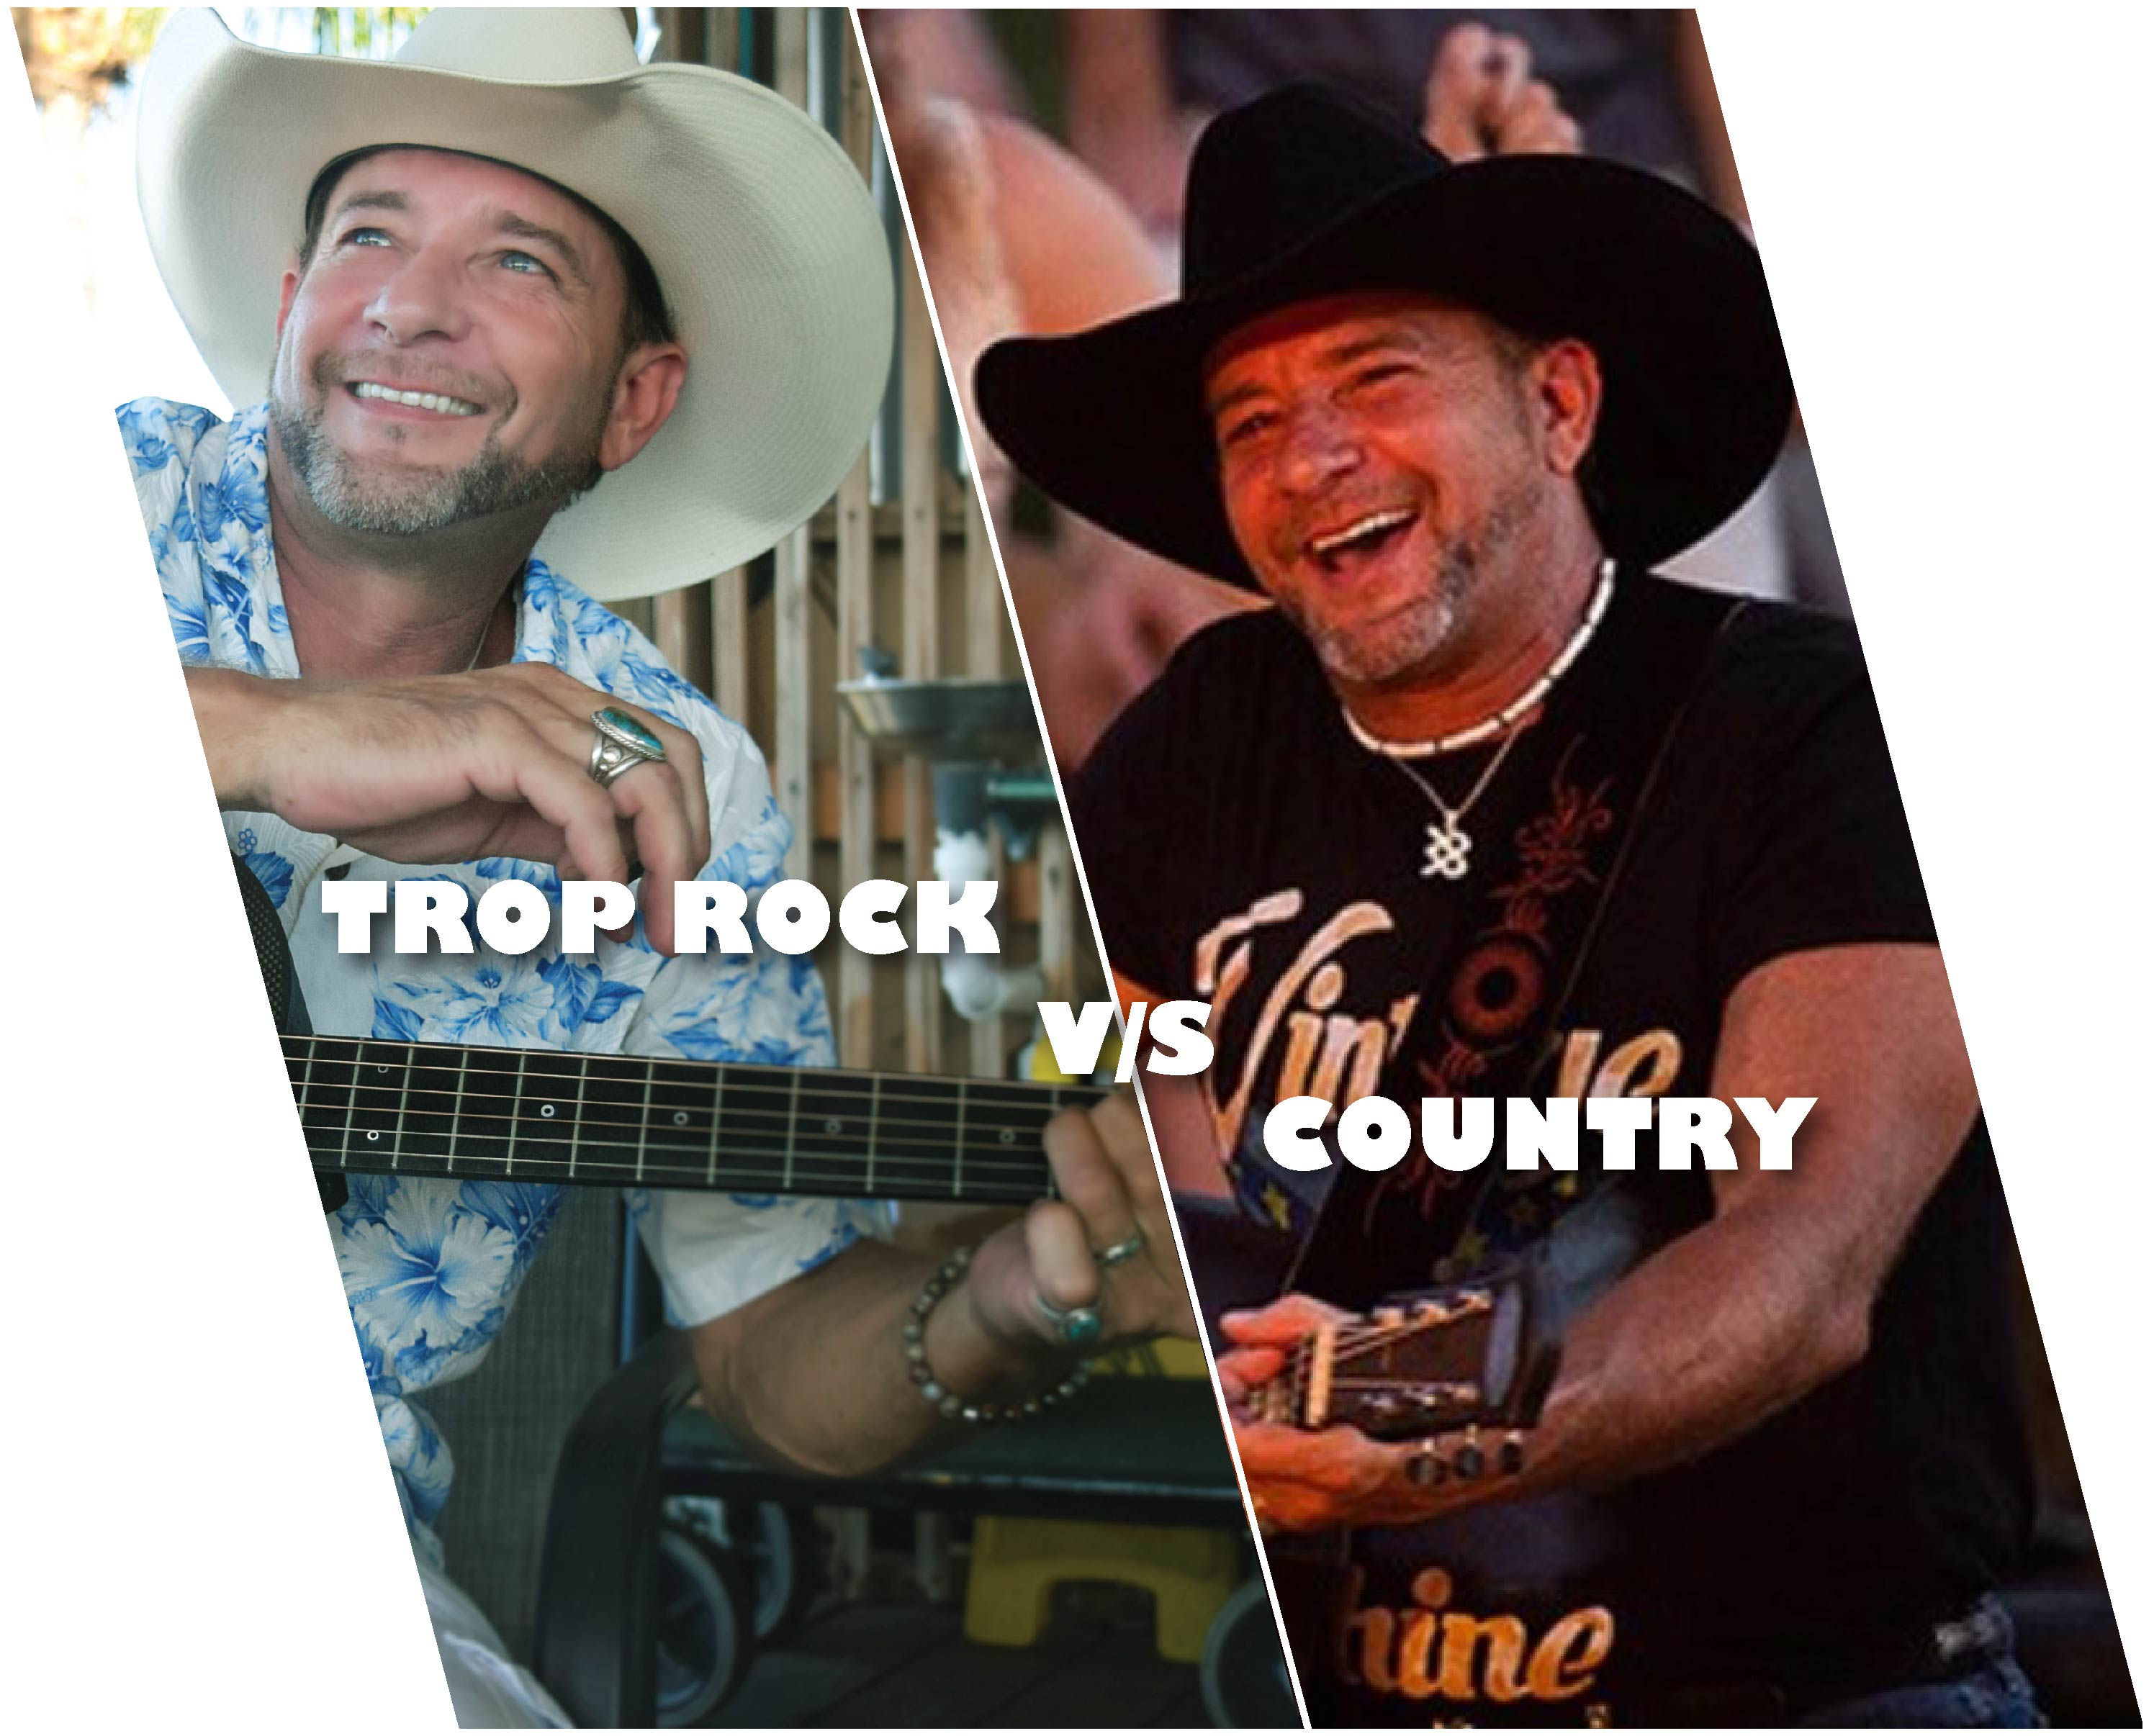 LIP SYNC BATTLE: TROP ROCK V/S COUNTRY? FUND RAISING CHALLENGE FOR DONAVON LEE'S NEXT FAN-FUNDED MUSIC RELEASE